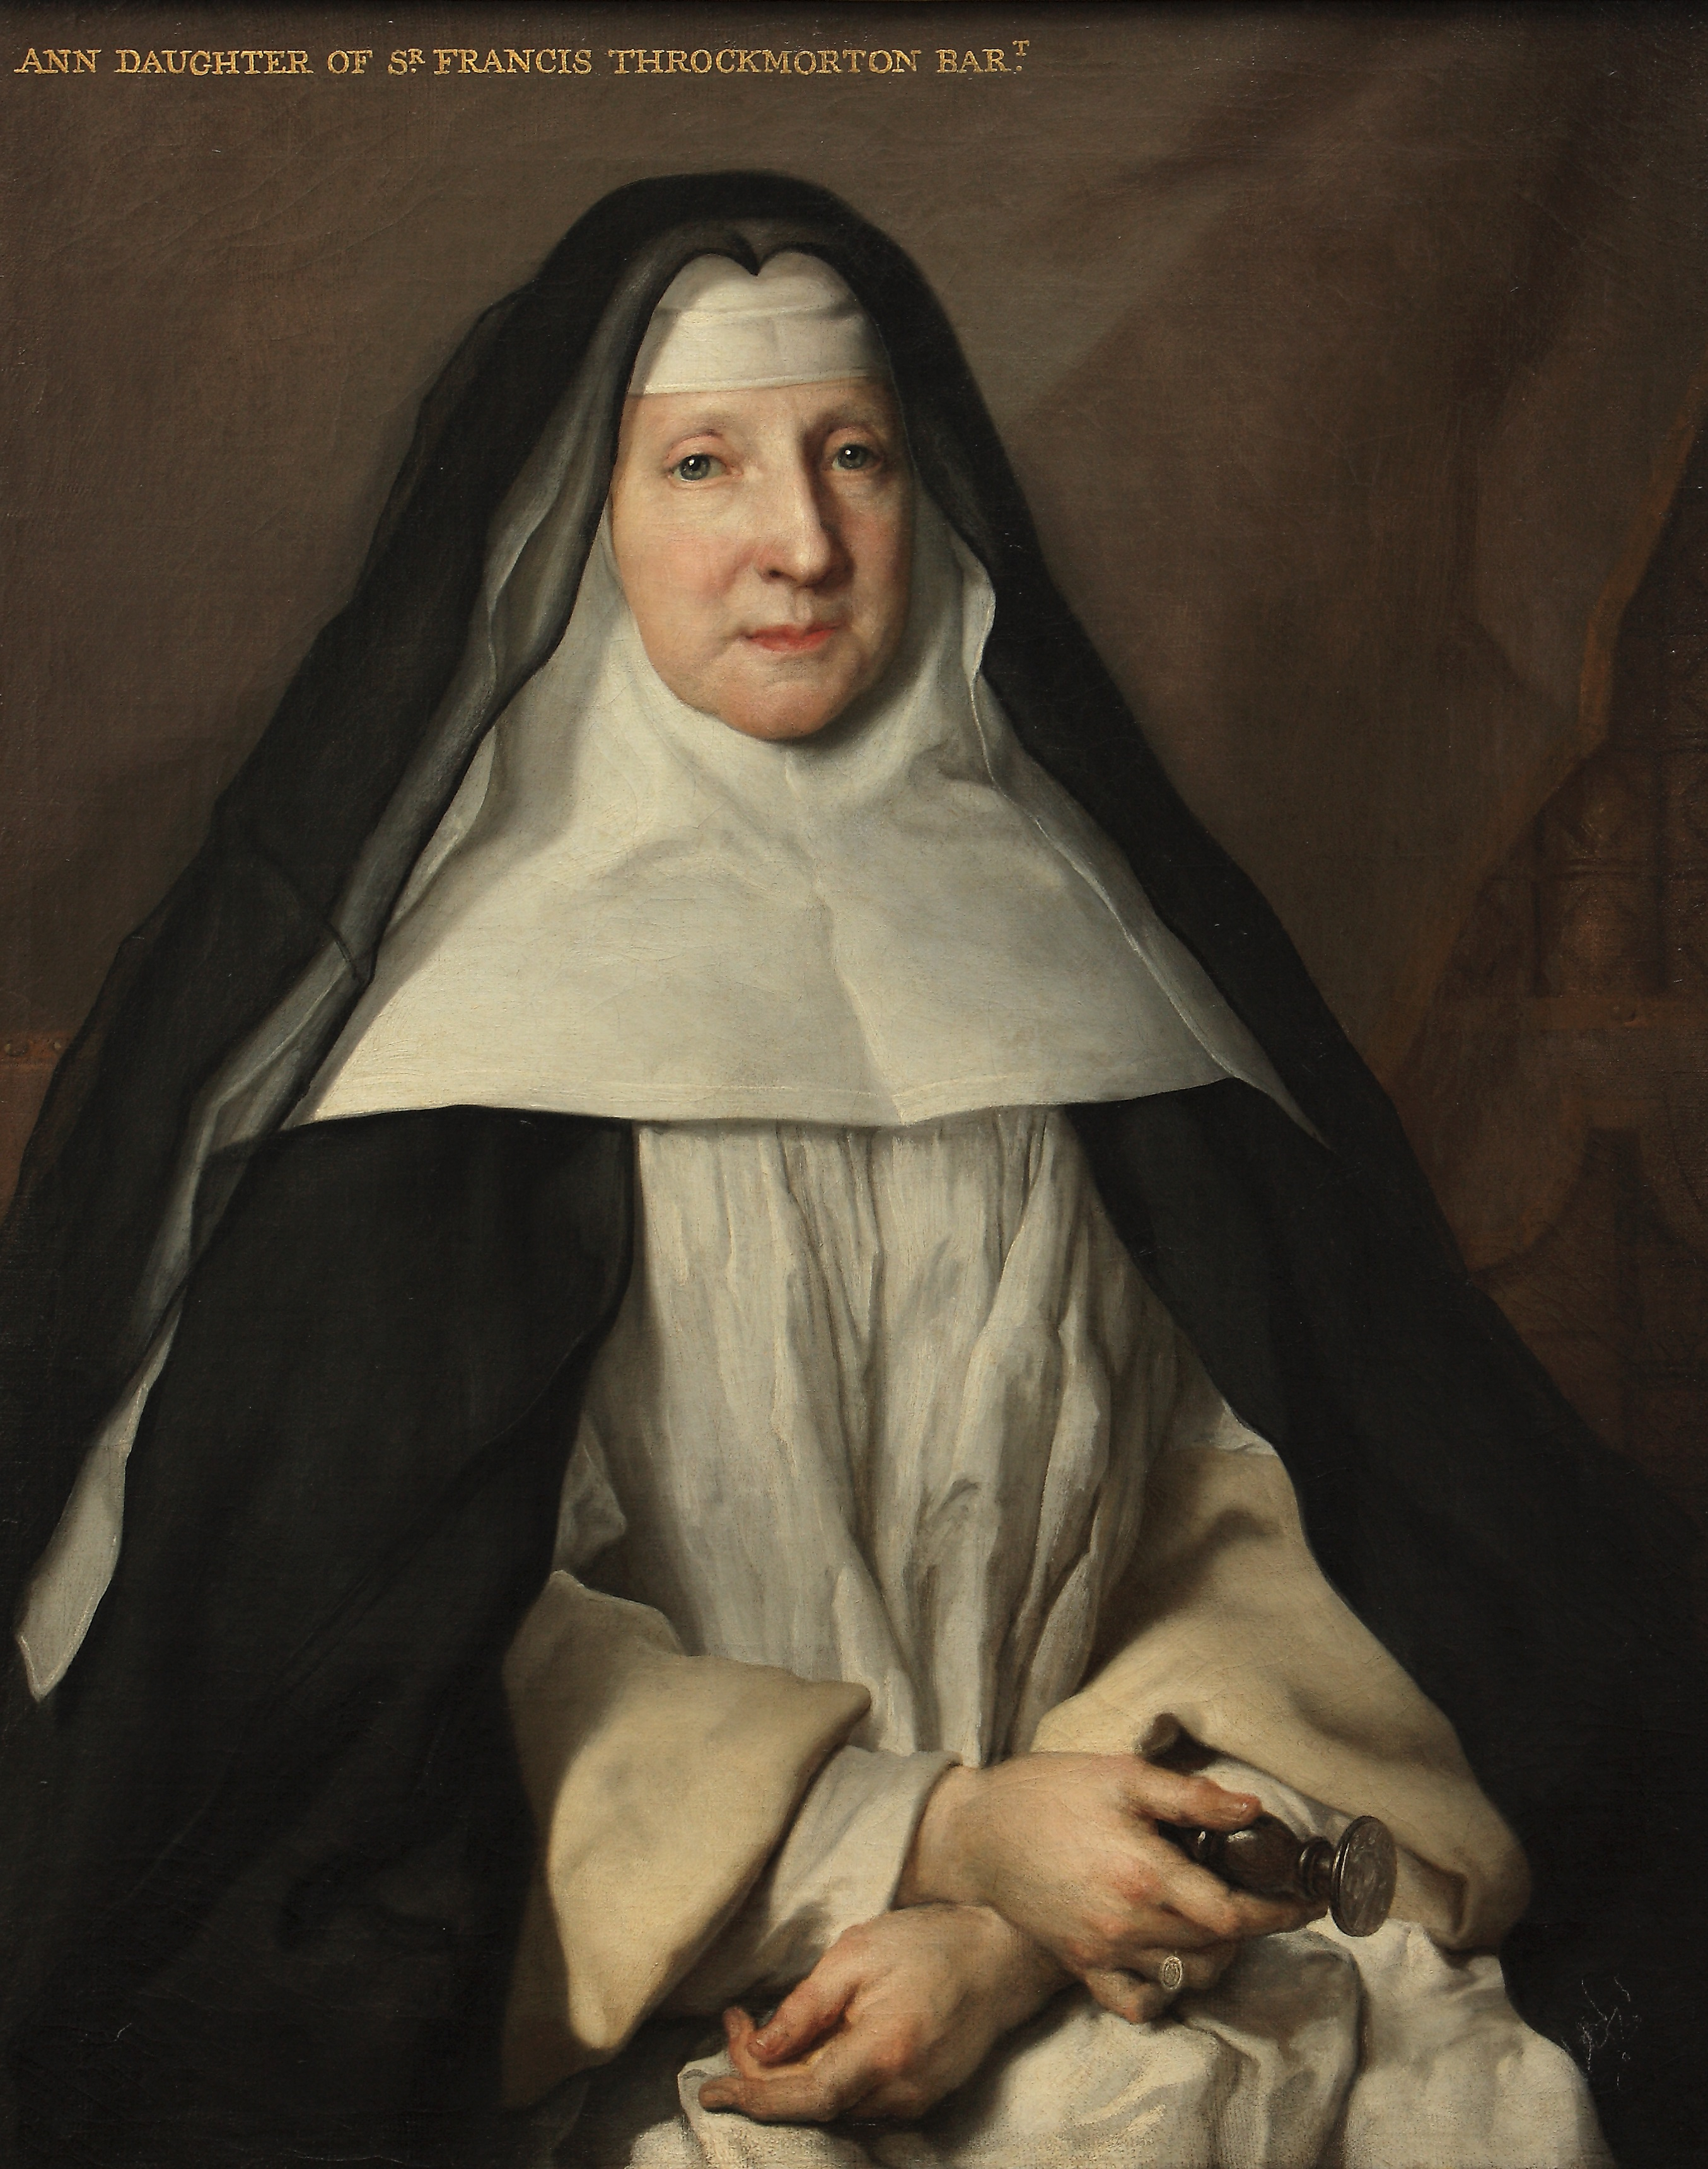 Anne Frances Throckmorton (1664-1734), Prioress of the English Augustinian Convent of Notre-Dame-de-Sion, Paris by Nicolas Largillière (1656 -1746). Coughton Court, Warwickshire, Midlands, National Trust © National Trust Images